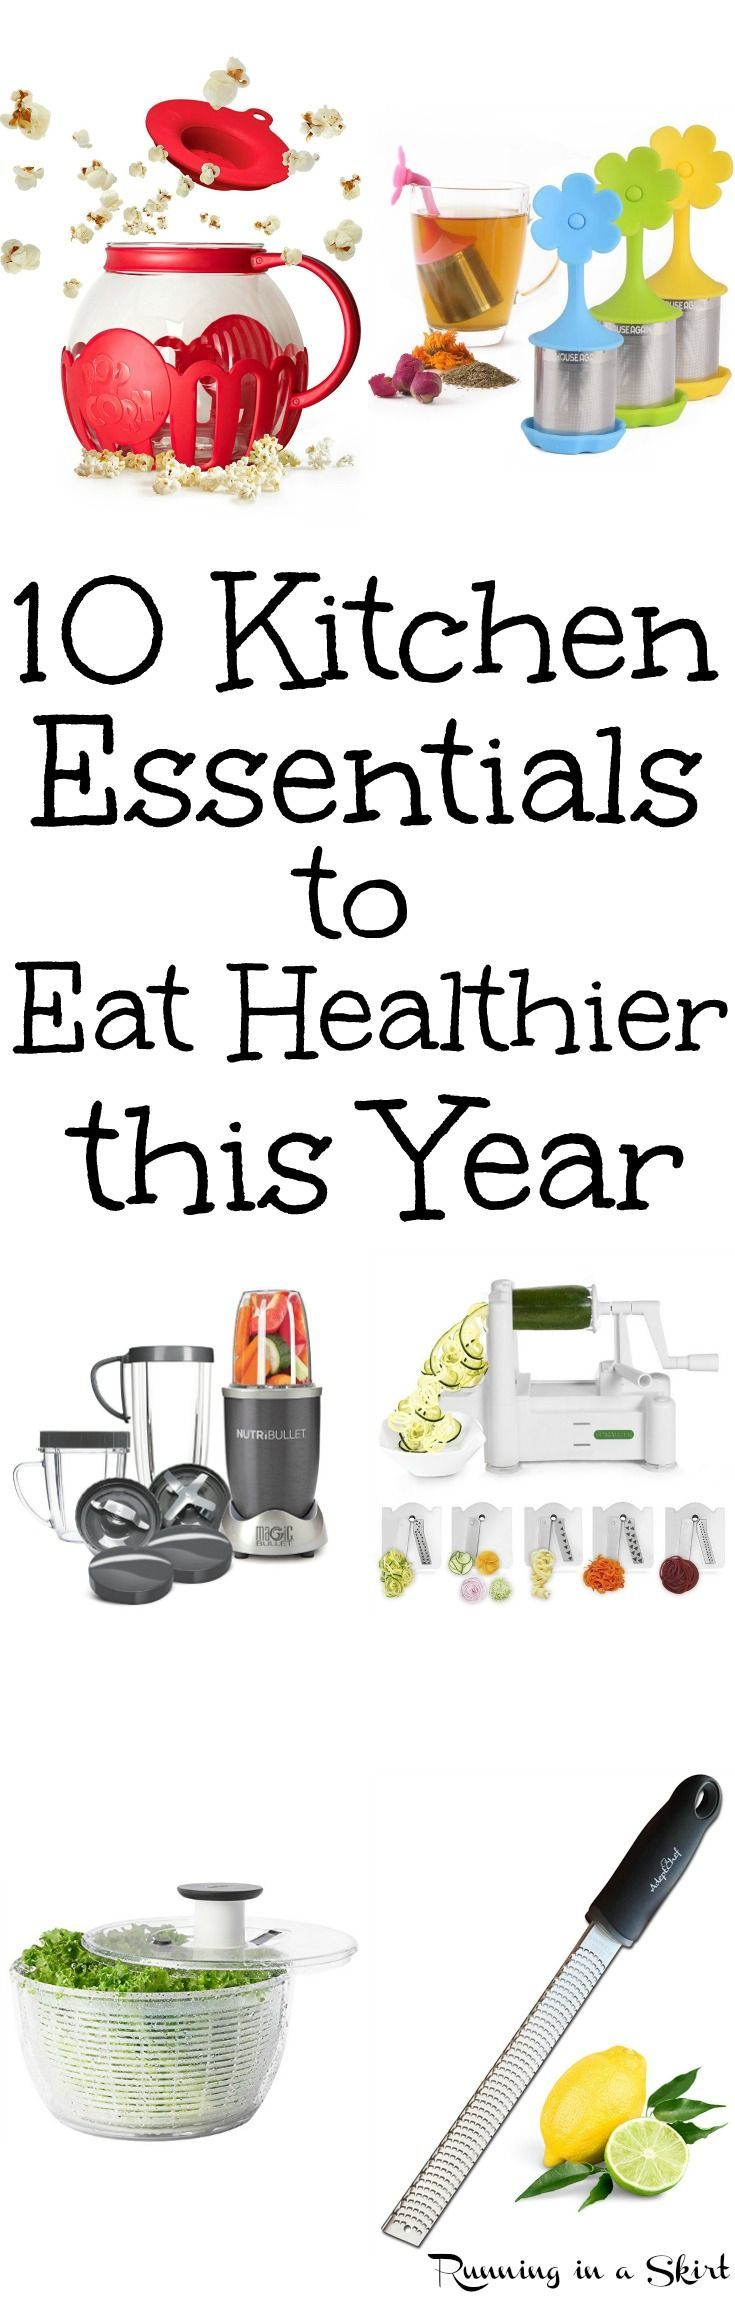 10 Healthy Kitchen Gadgets and Tools to Eat Healthier for Life.  These run ideas and products can make cooking easier and better for your health.  Great home tools for clean eating, cooking veggies, vegetable noodles for low carb diets and following recipe ideas. / Running in a Skirt